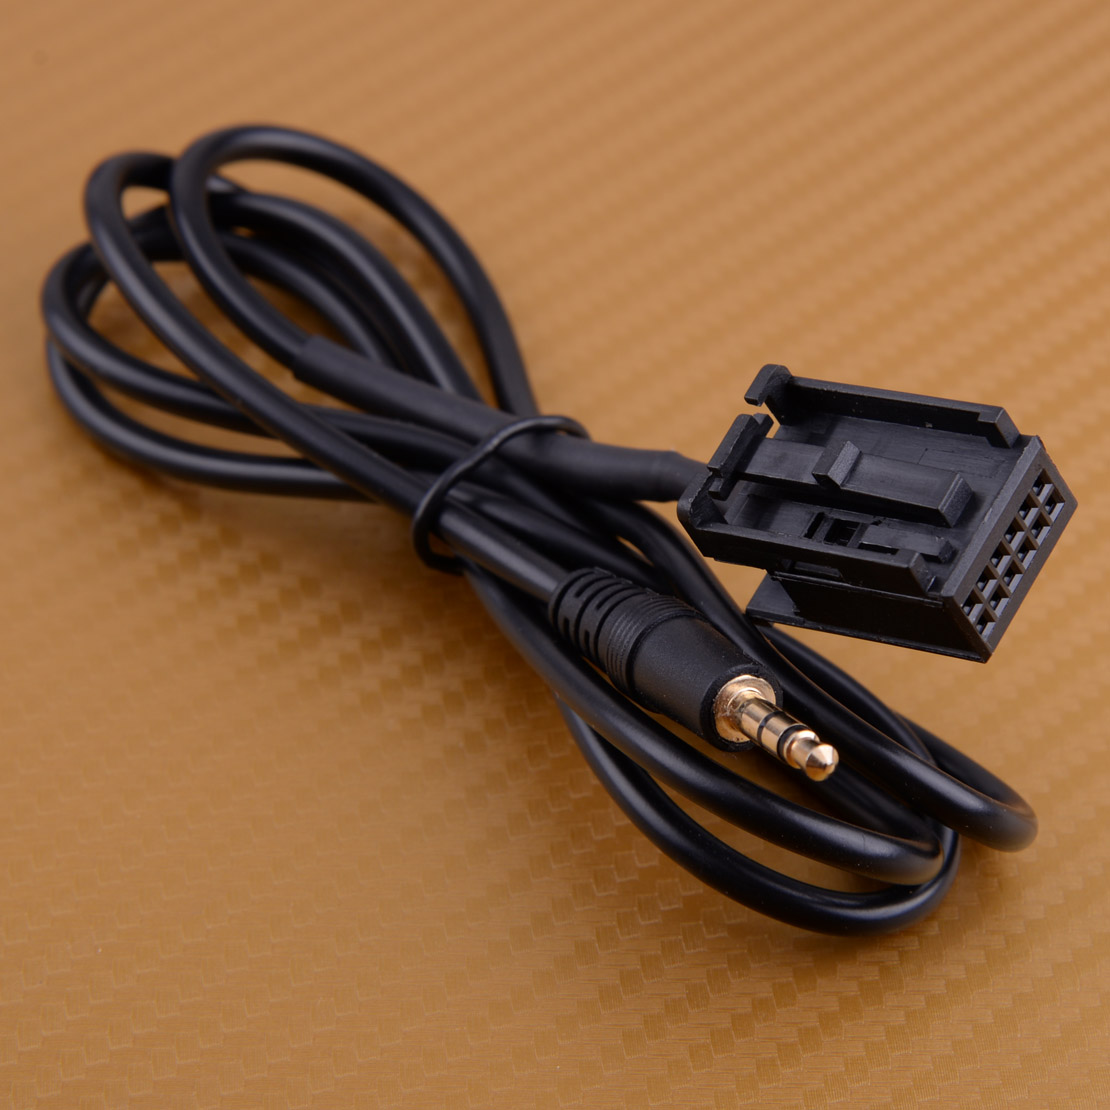 beler 12 pin <font><b>6000CD</b></font> Input Adapter Cable Lead stereo Radio <font><b>MP3</b></font> 3.5mm AUX Jack Interface Fit for Vauxhall CD30 CDC40 CD70 NAVI image